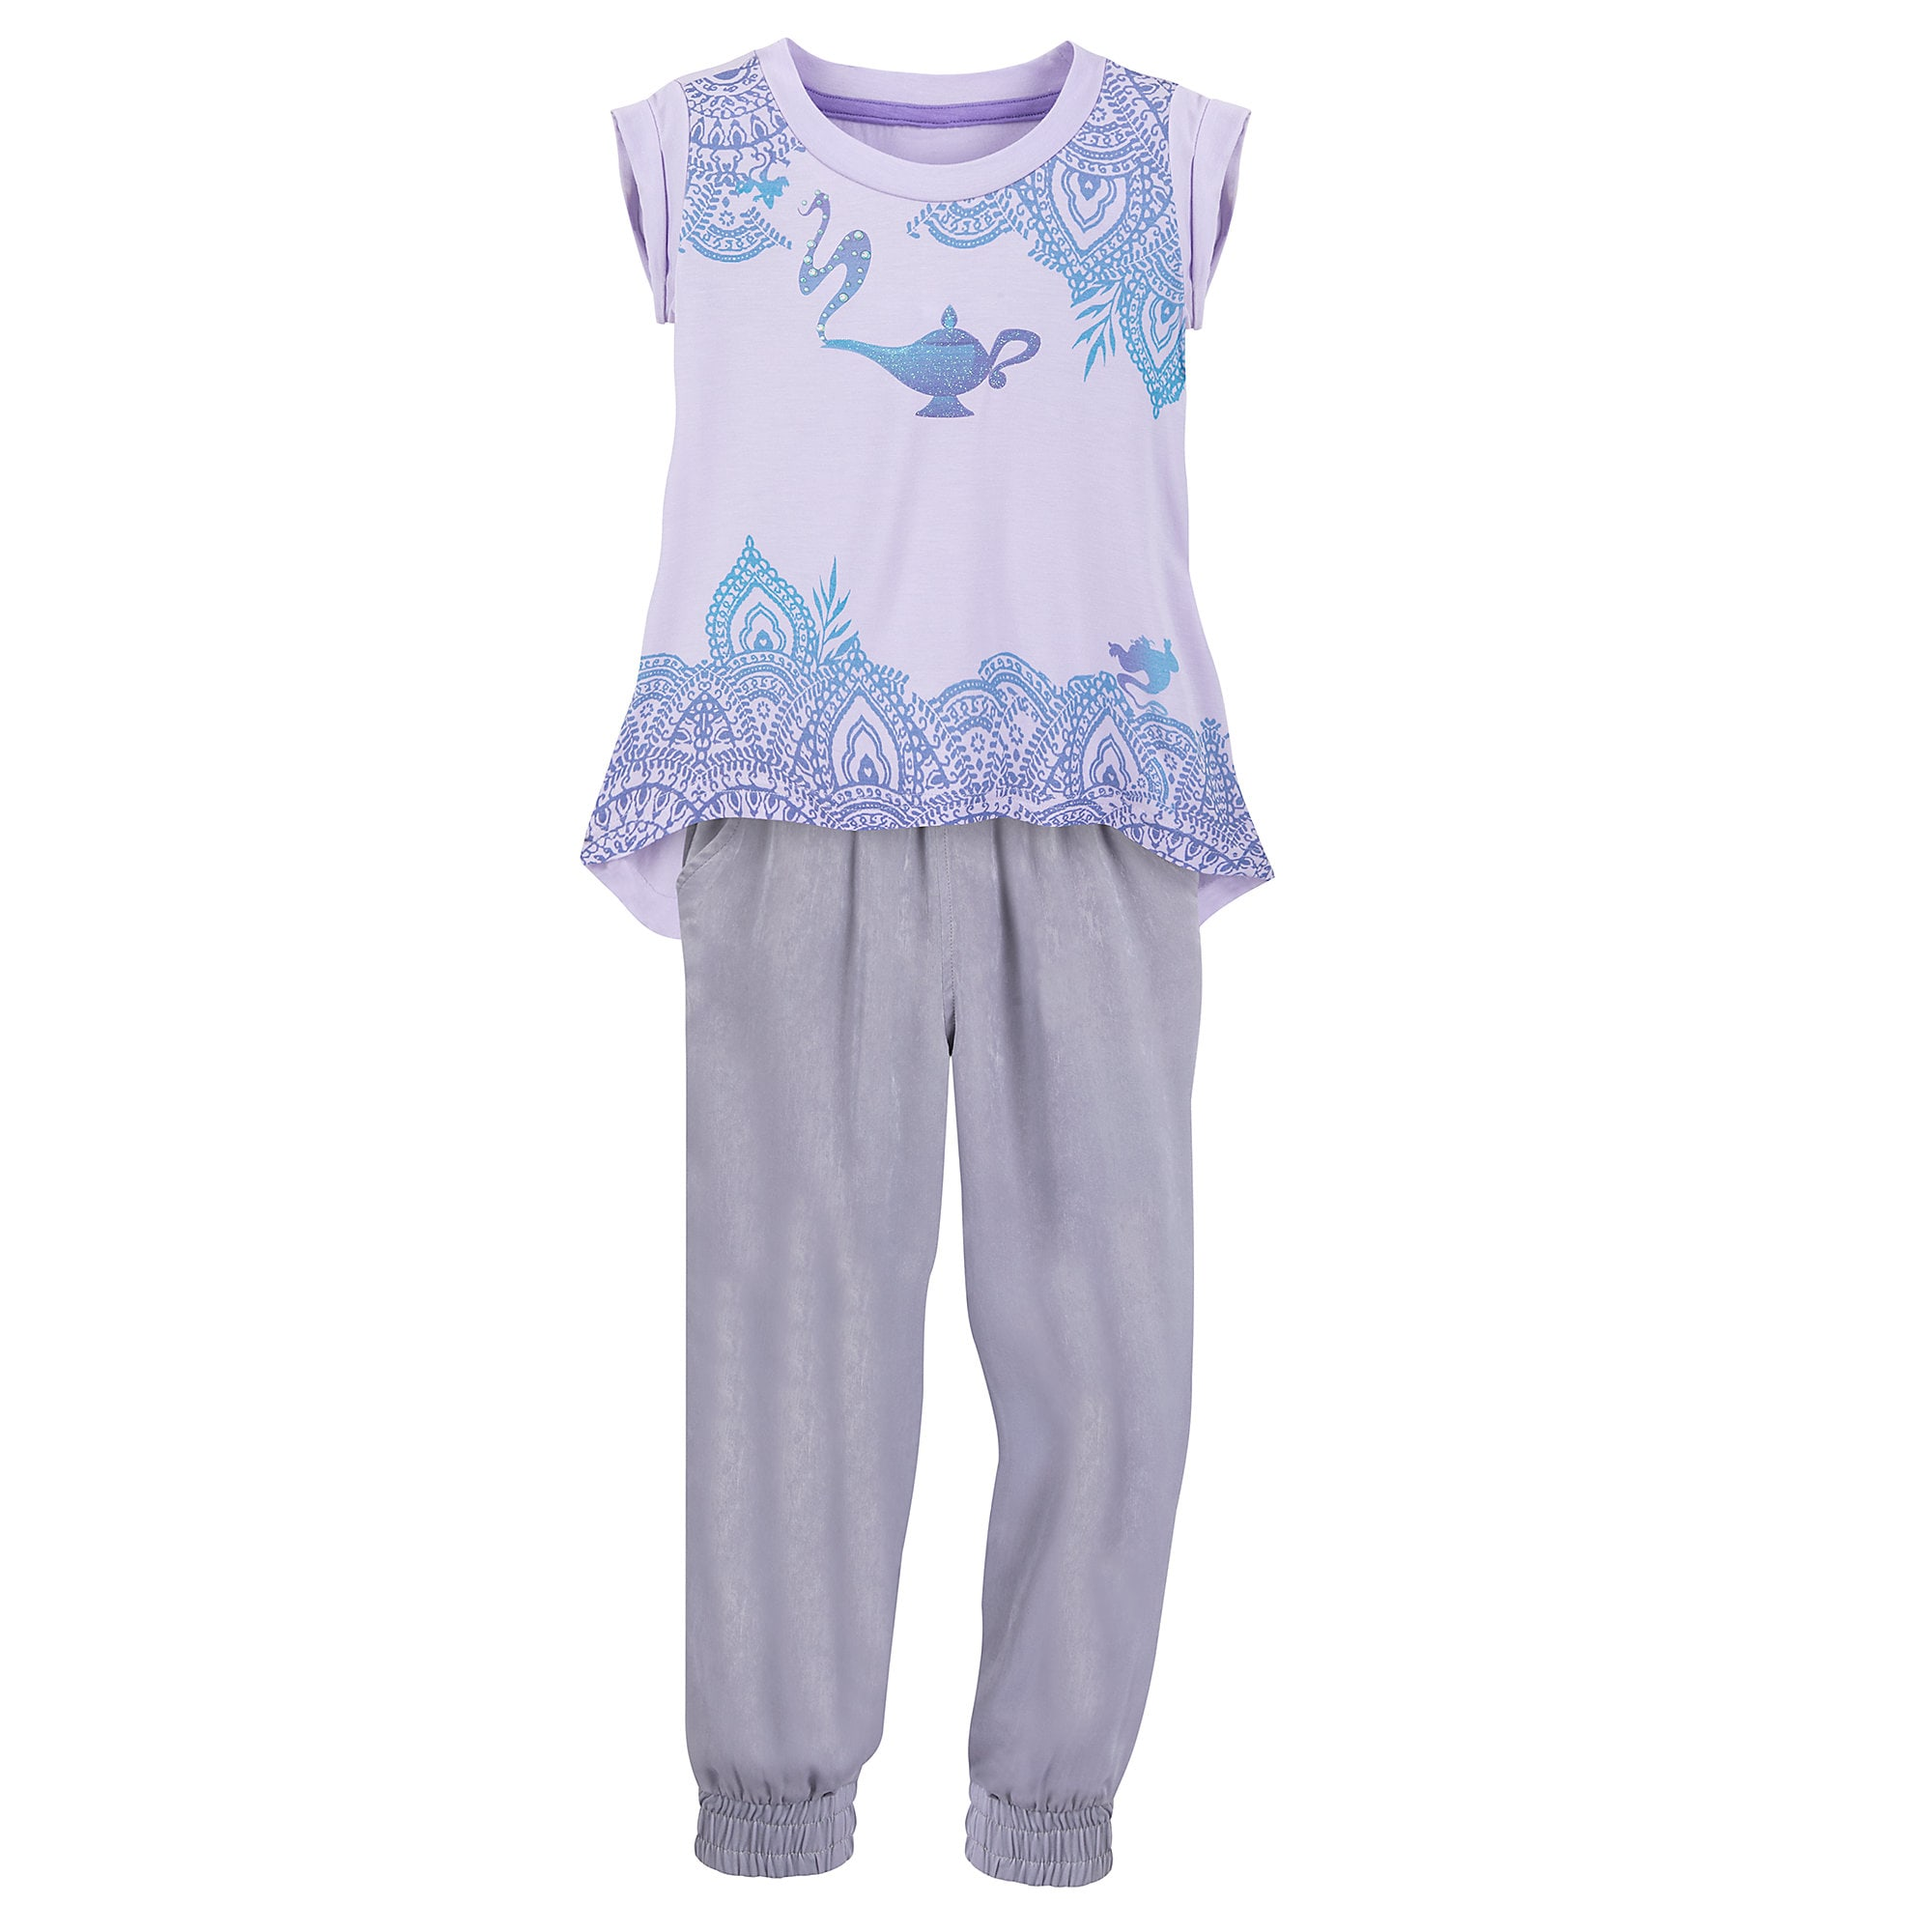 Jasmine Pants Set for Girls